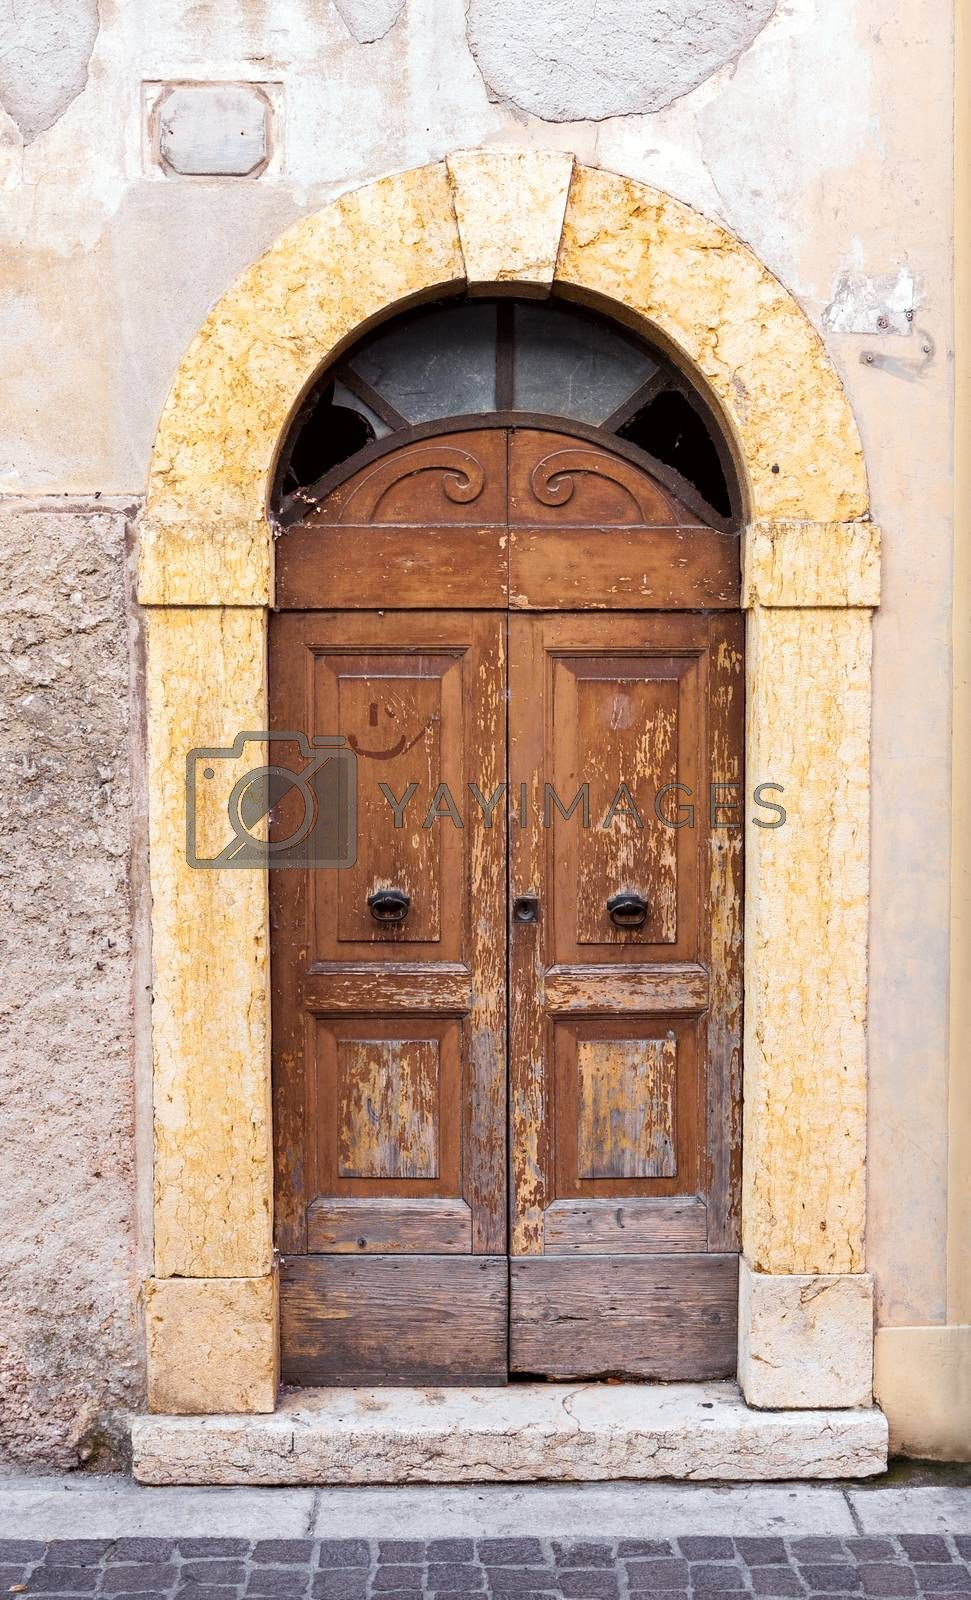 Old weathered wooden doors in Italy